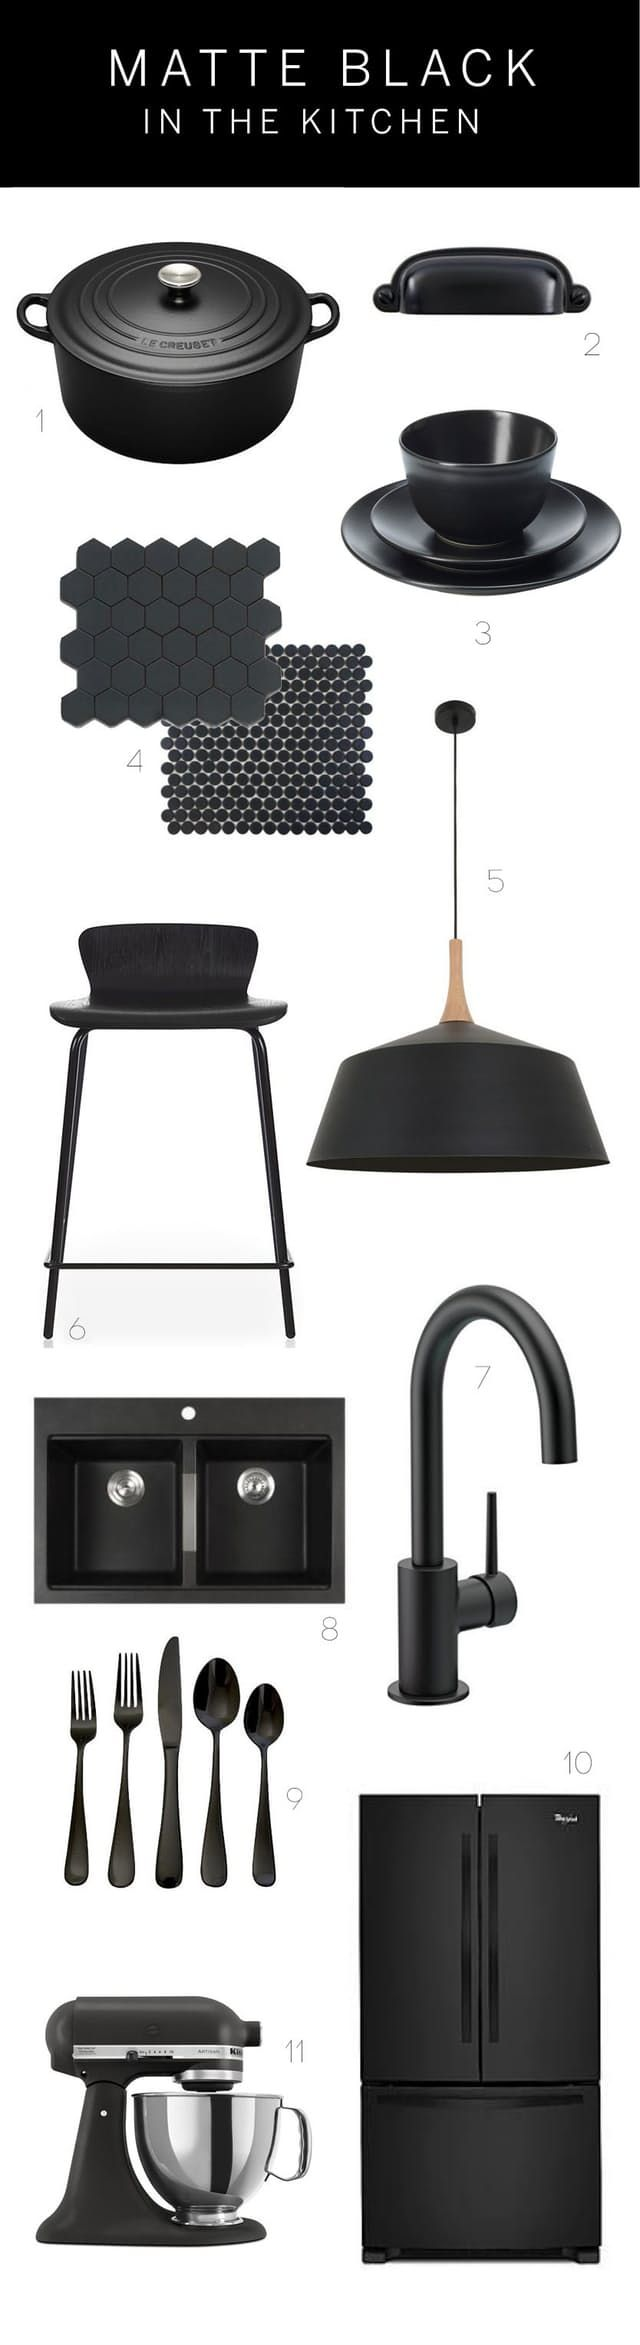 Black has always been a chic, sophisticated color for the home and matte black is it's even more fashionable cousin. We've shown you stunning kitchens featuring the matte black trend and wanted to follow up with some specific products you can add to your kitchen to get the look at home: